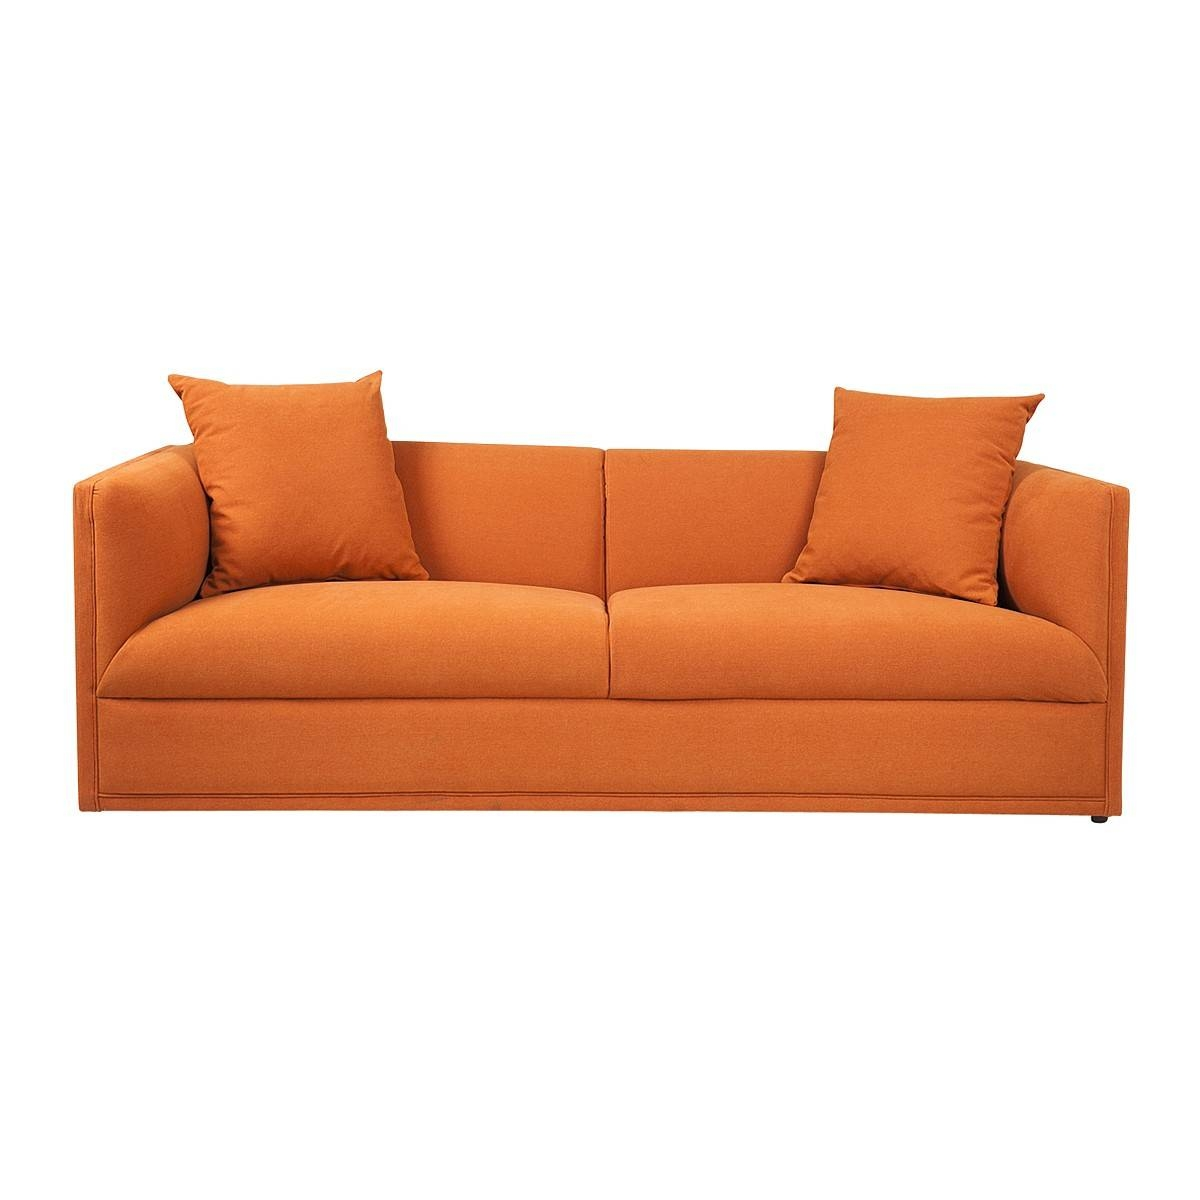 Single Sofa Bed Chair | Tehranmix Decoration Inside Single Sofa Beds (View 15 of 30)